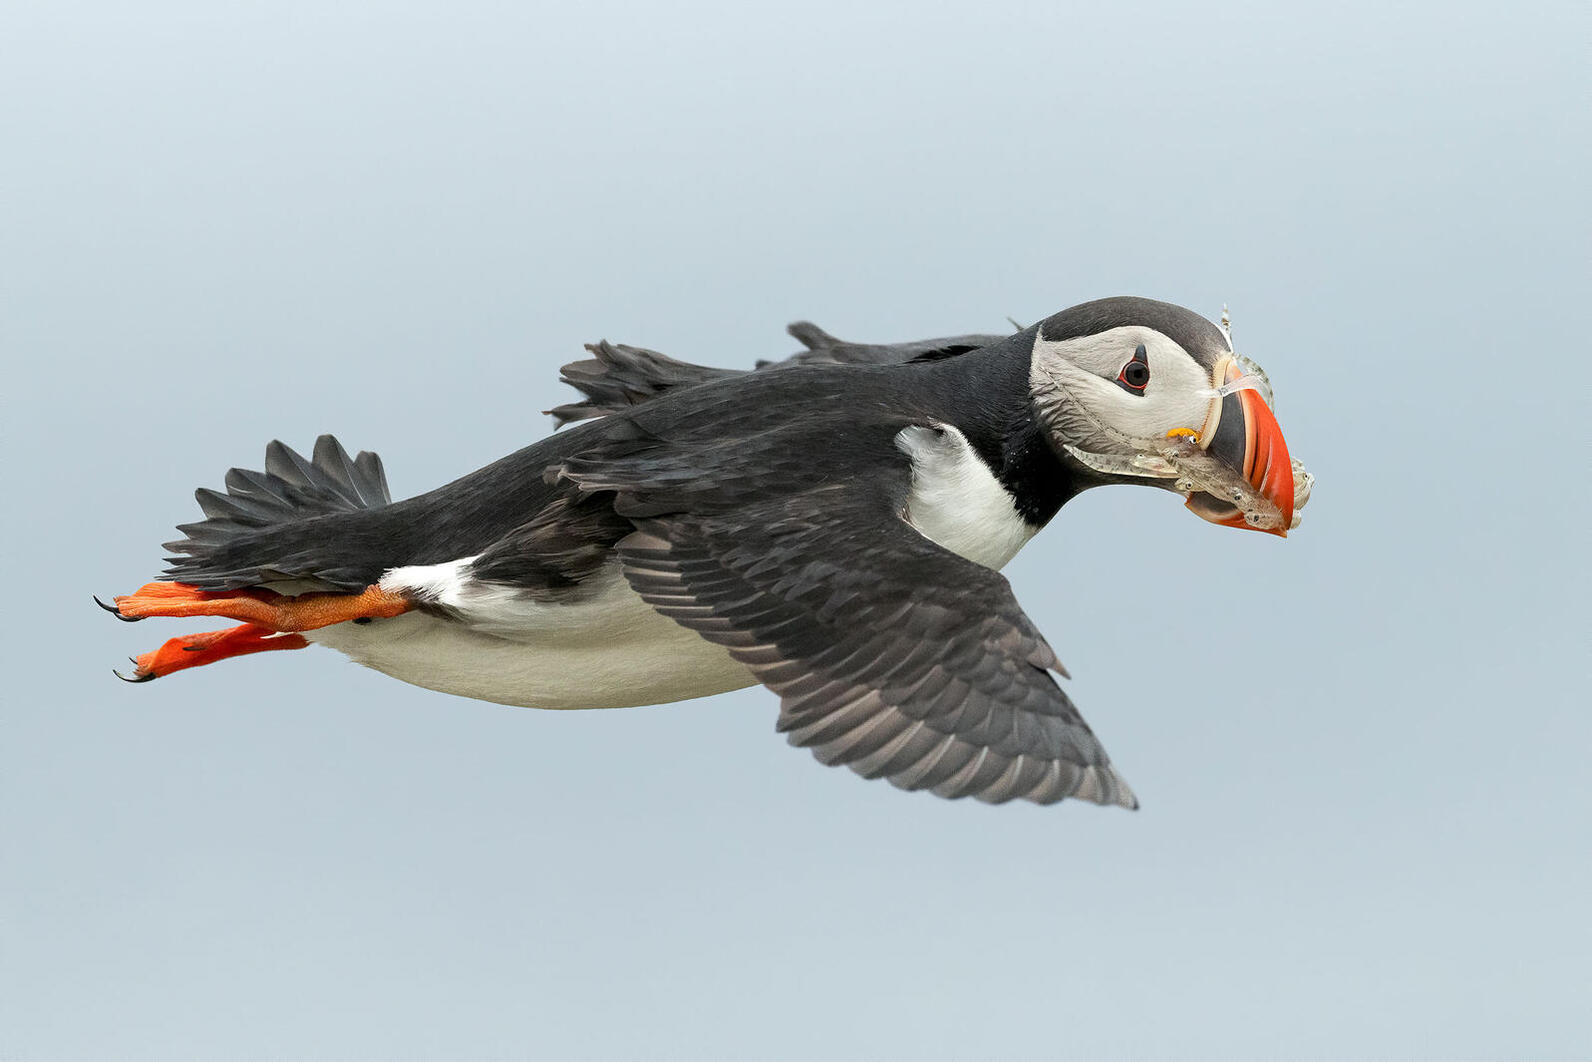 Atlantic Puffin by Ann Pacheco/Audubon Photography Awards